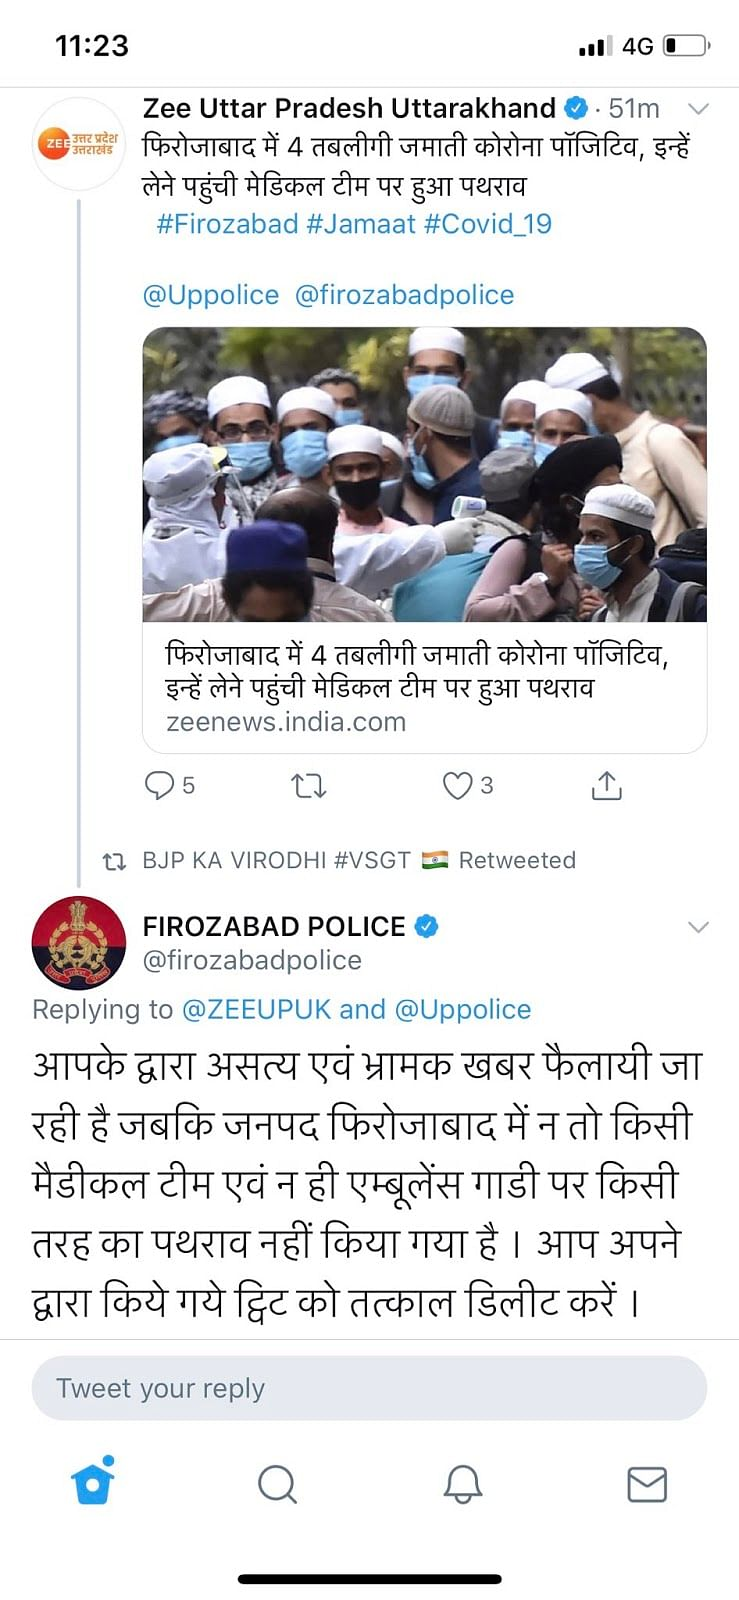 The original Zee News tweet and the clarification by the Firozabad Police under it.